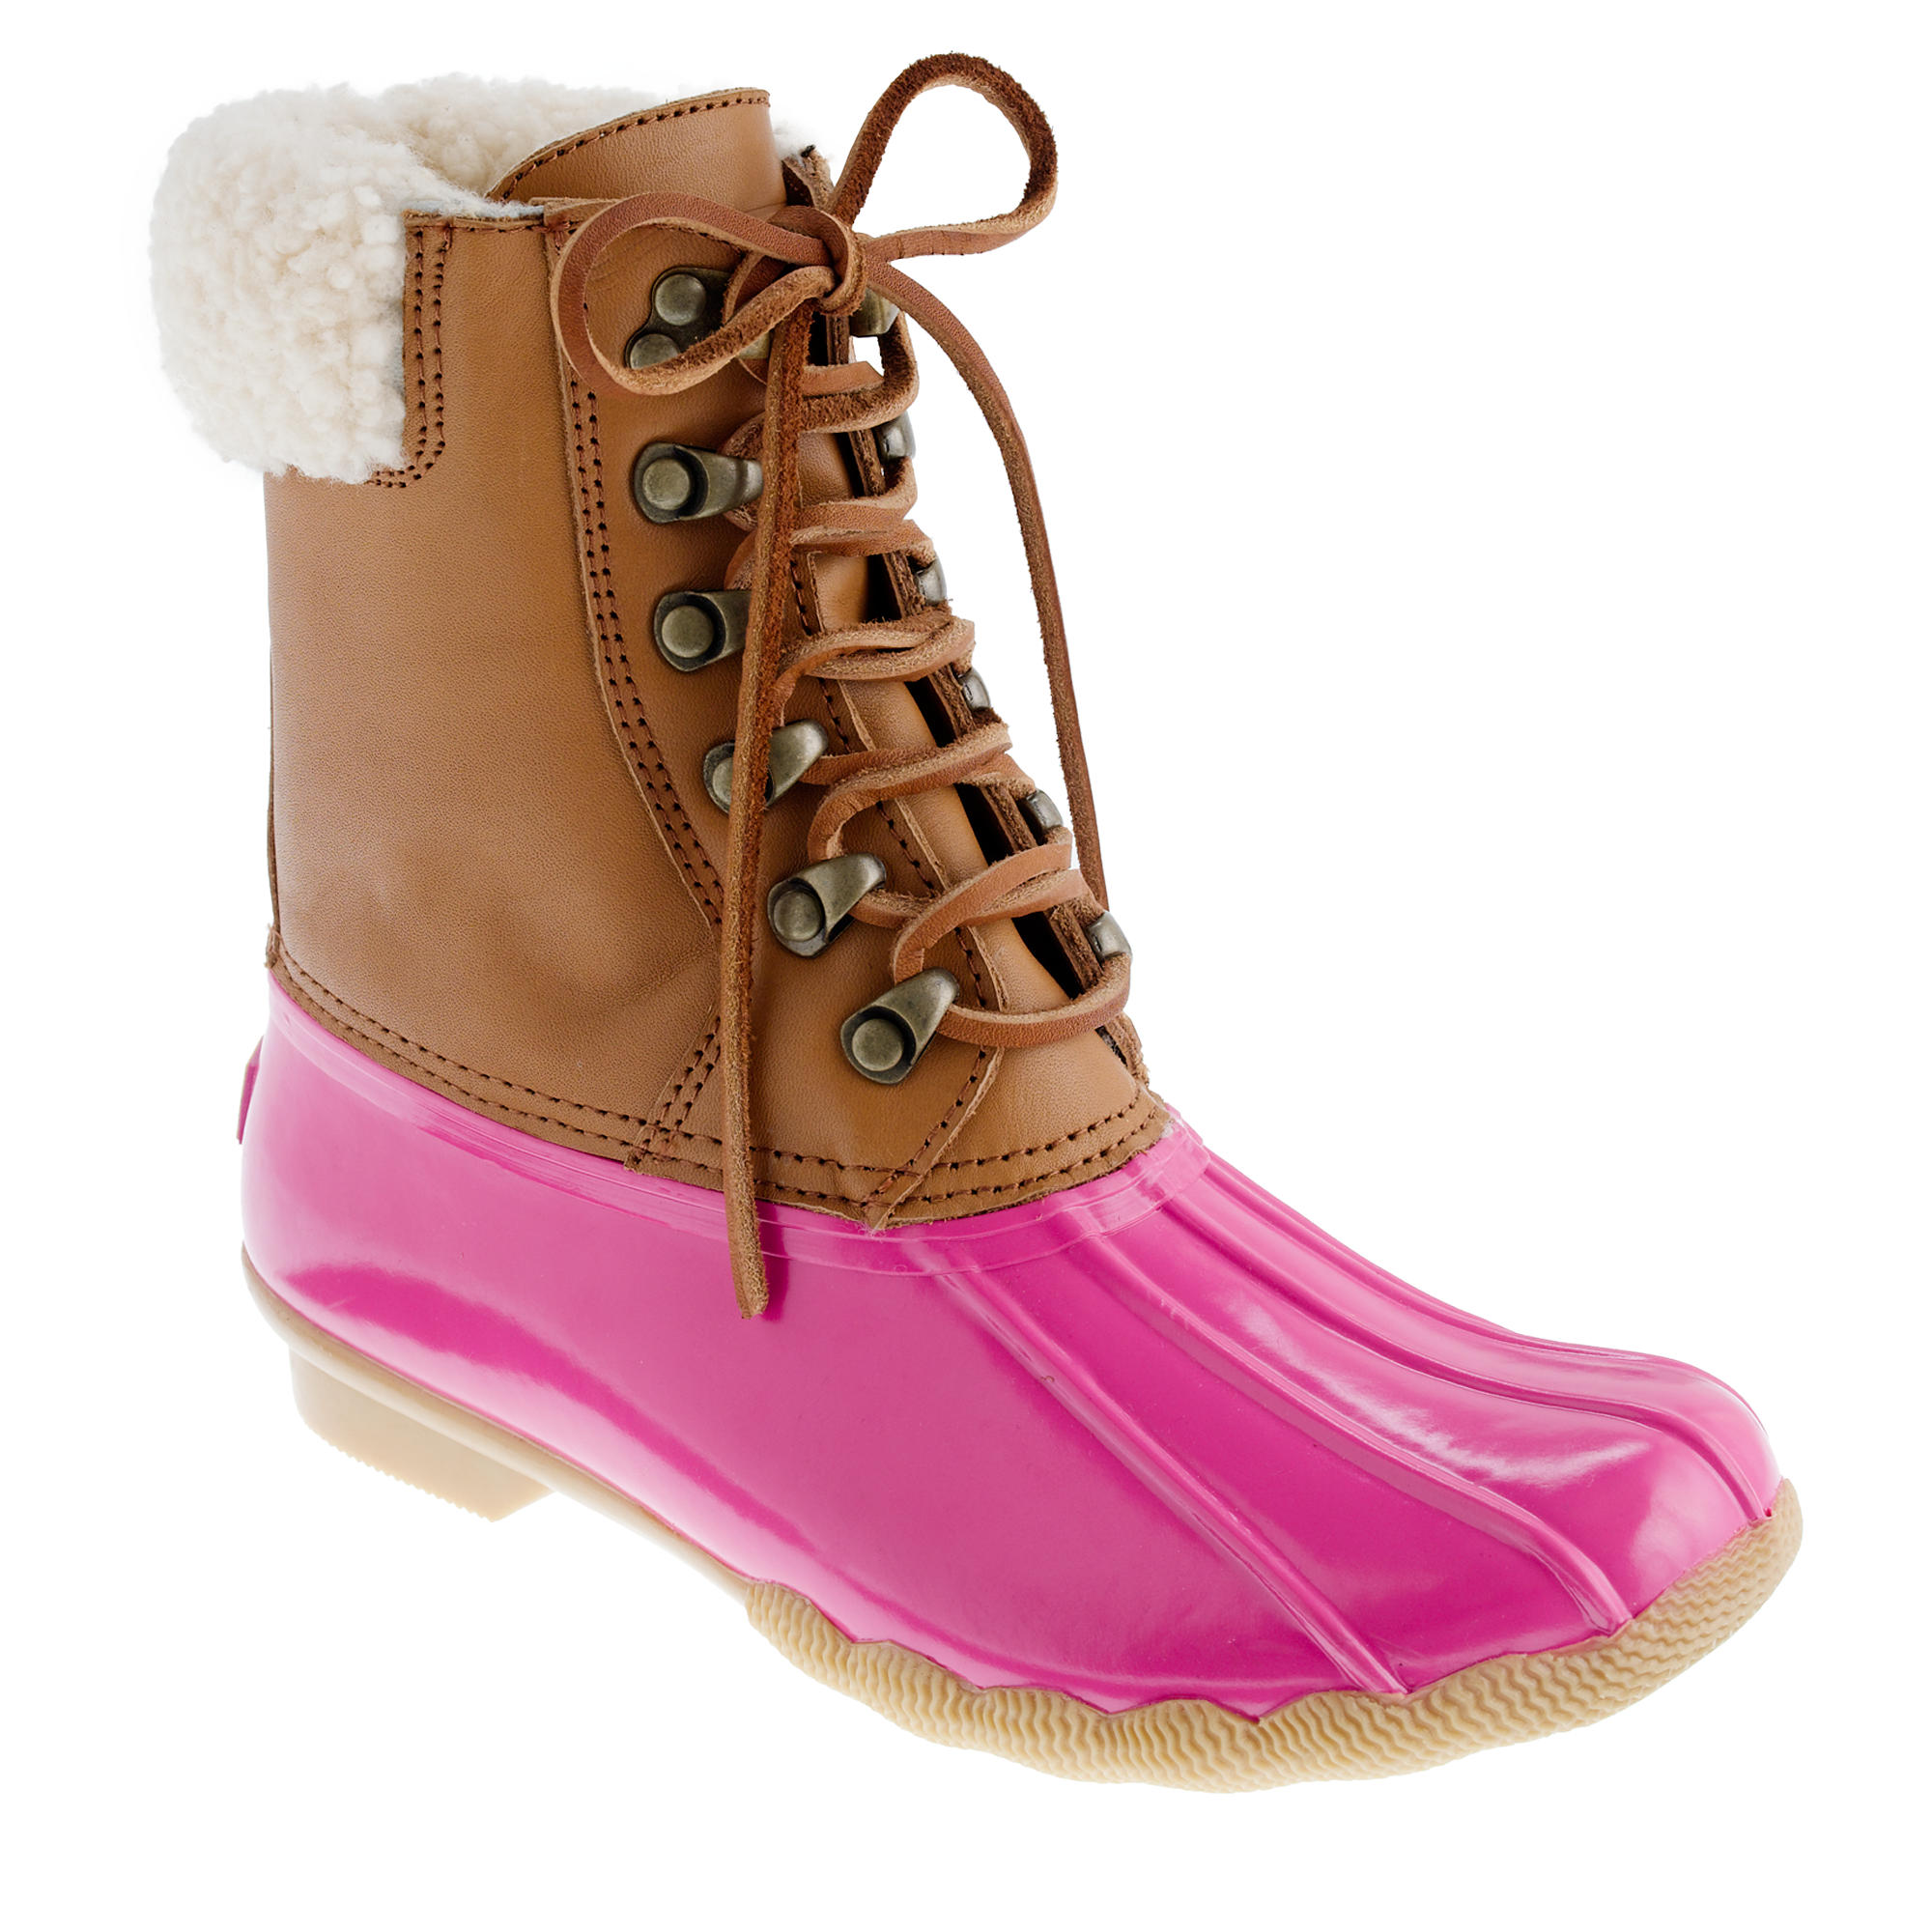 Sperry Top-Sider® for J.Crew short Shearwater boots : | J.Crew